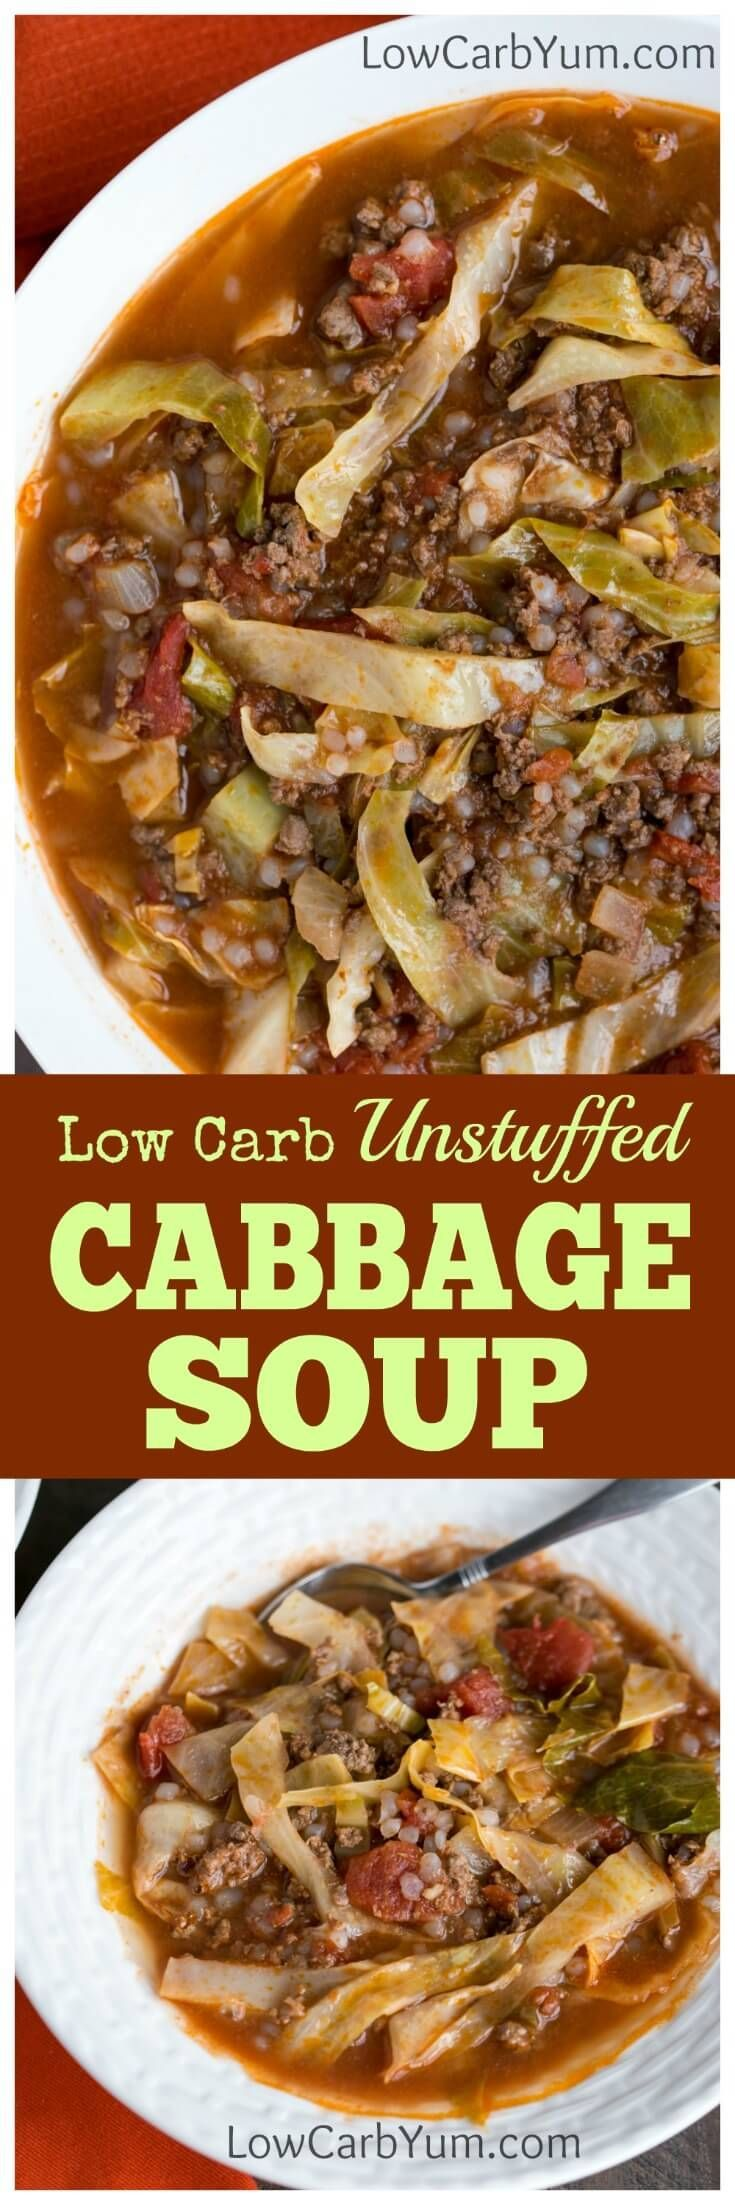 Are you a cabbage roll fan but hate all the work involved to make them? If so, you need to try this easy unstuffed cabbage soup recipe.   LowCarbYum.com